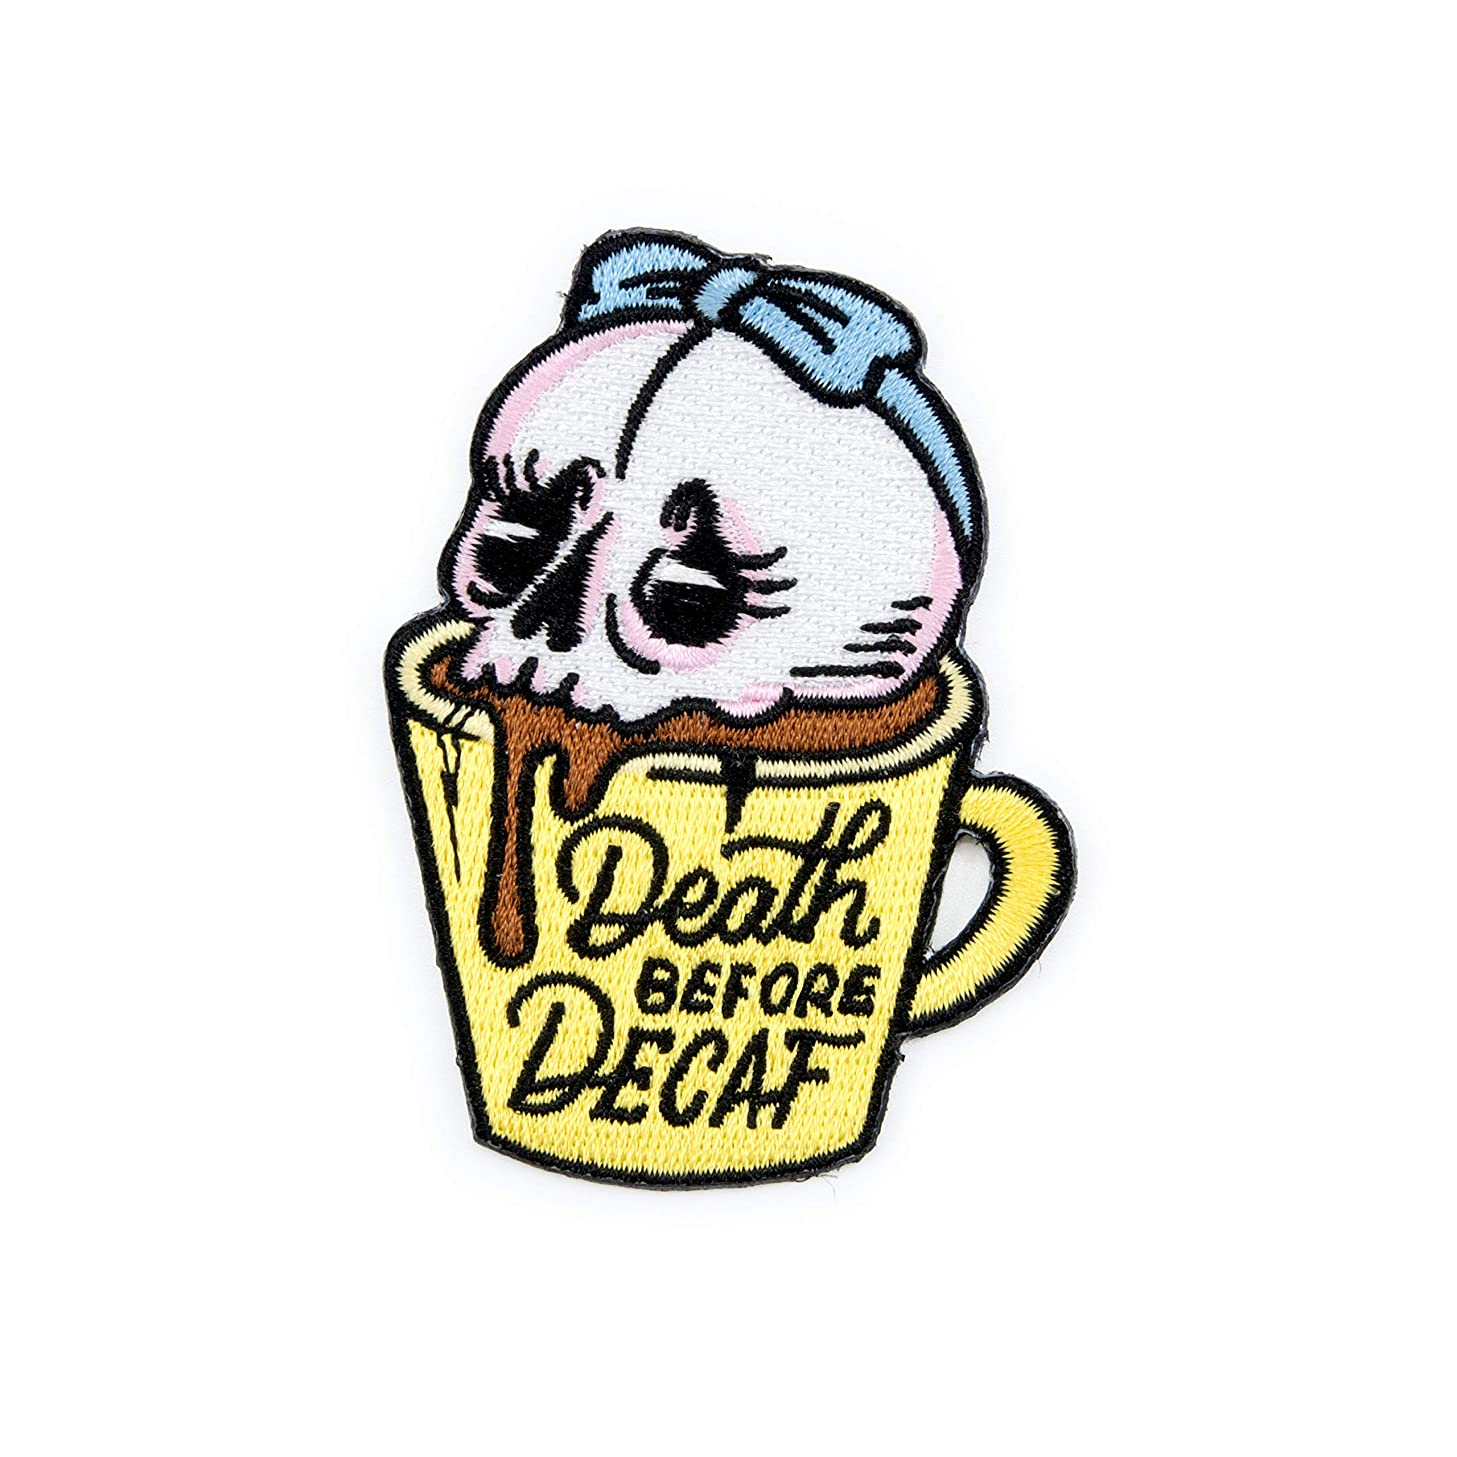 Winks For Days Death Before Decaf Embroidered Iron-On Patch